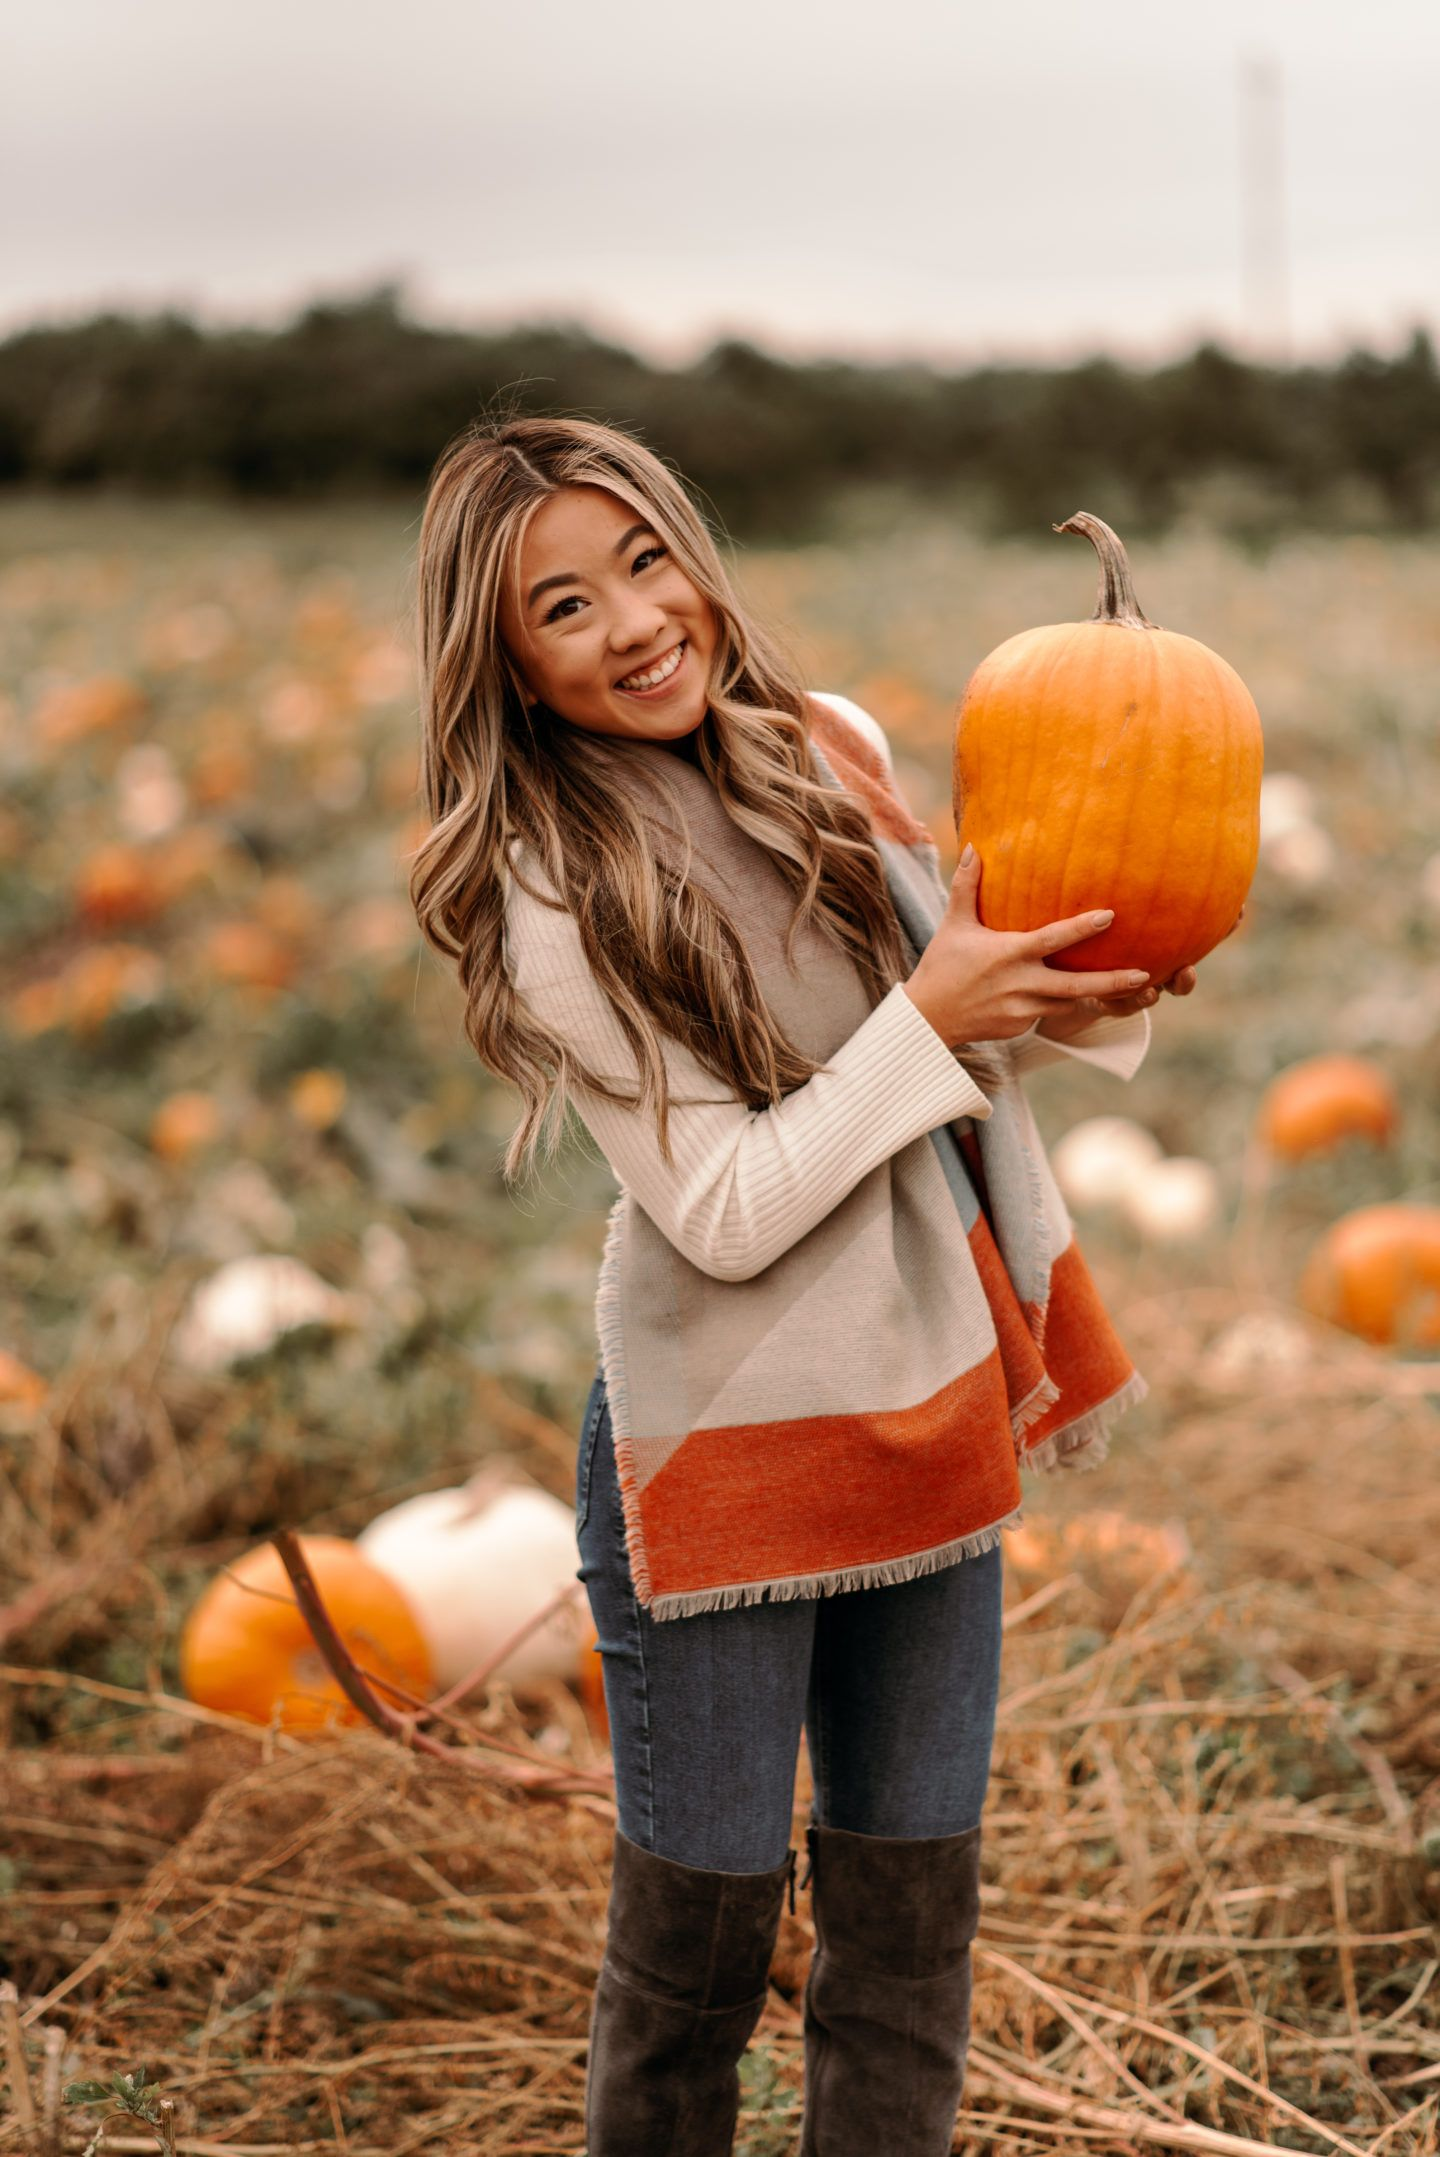 Pumpkin Patch Photoshoot  pumpkin patch photoshoot fall fashion fall outfit pumpkin patch photos fall scarves marisa kay fall aesthetic fall photoshoot #pumpkinpatchoutfit